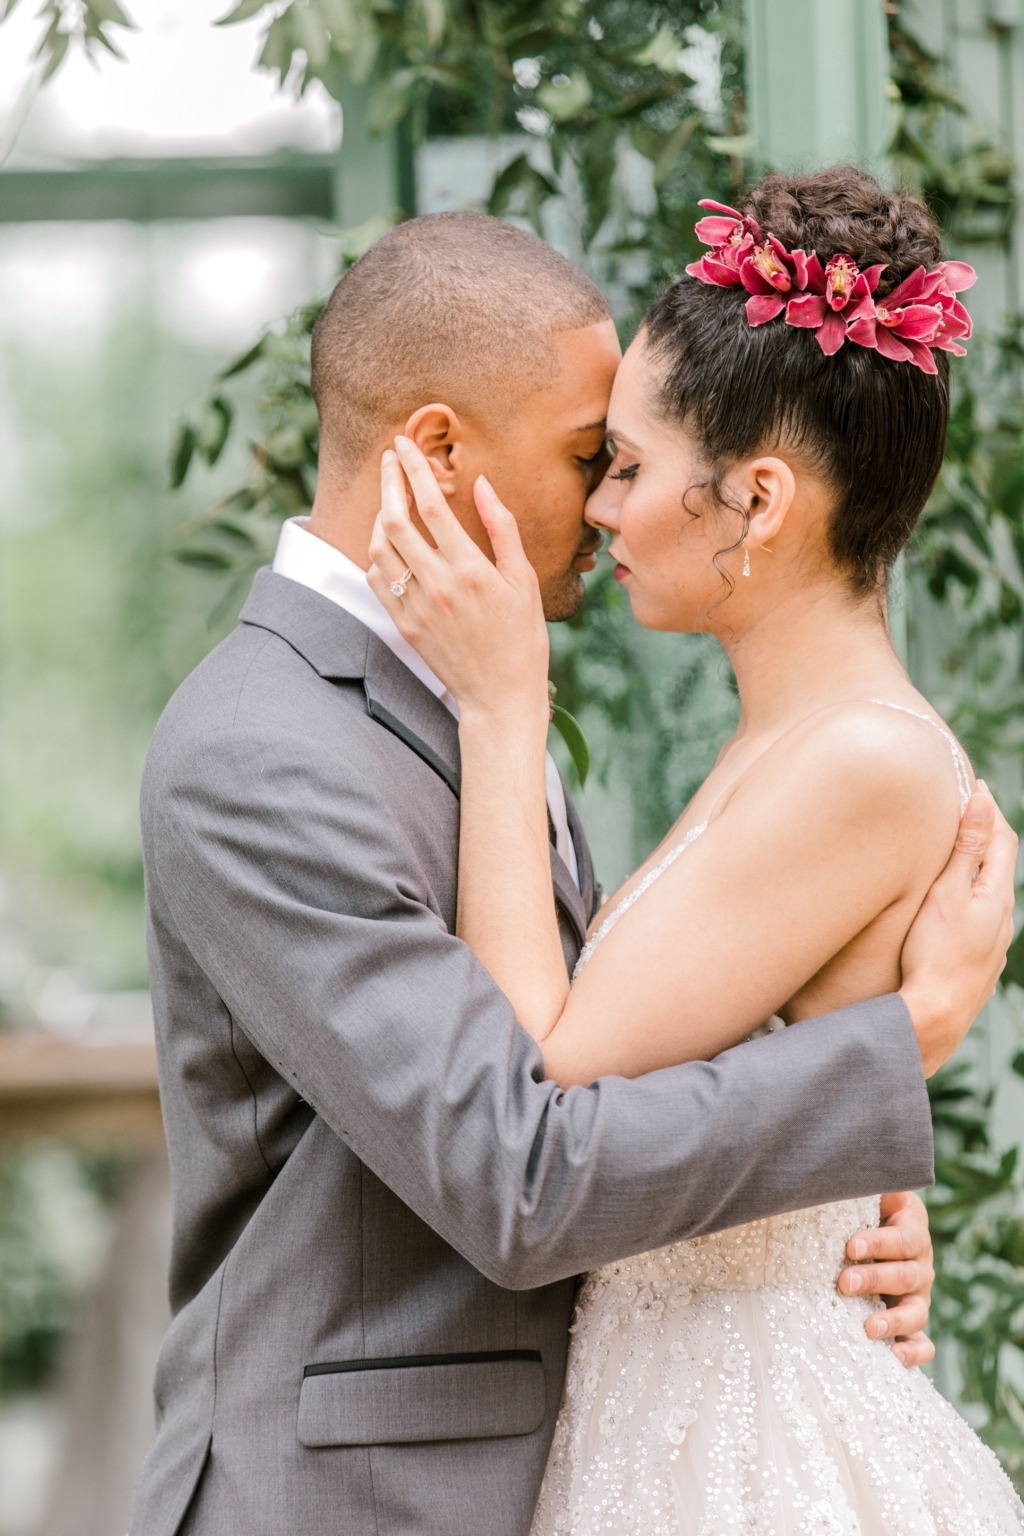 Stunning wedding couple! Love the flowers in the brides hair!